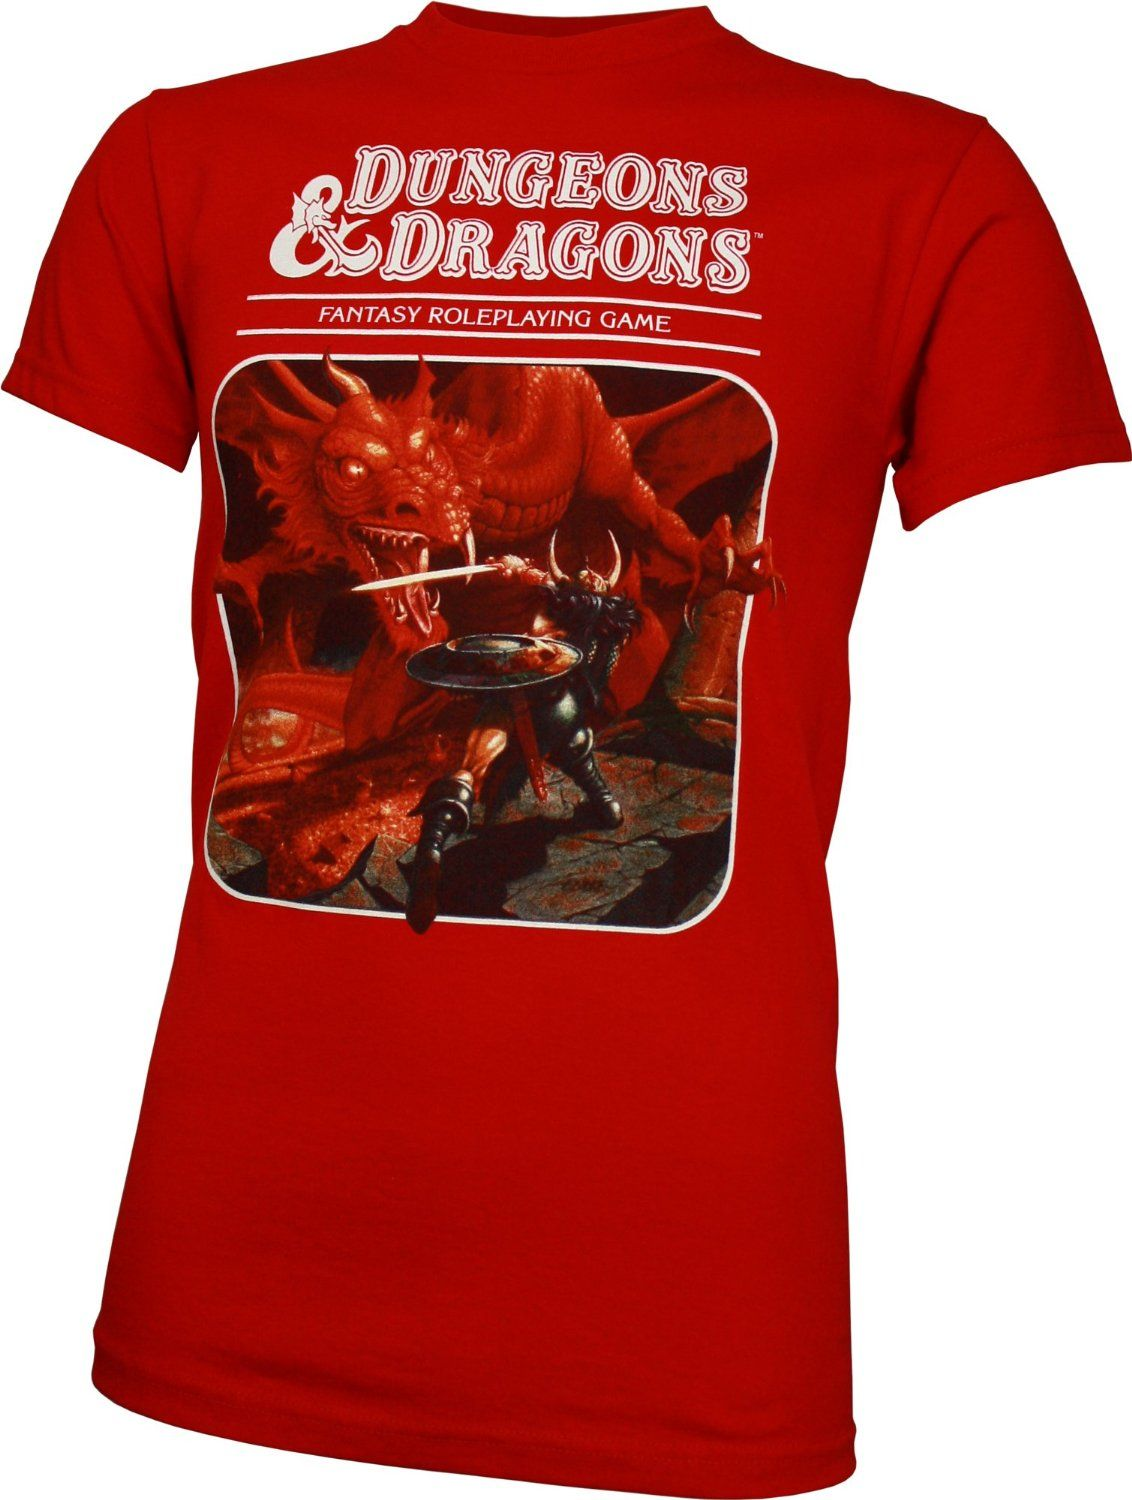 Dungeons Dragons Mens T Shirt Clothing Gaming Clothes Dungeons And Dragons Crazy Outfits